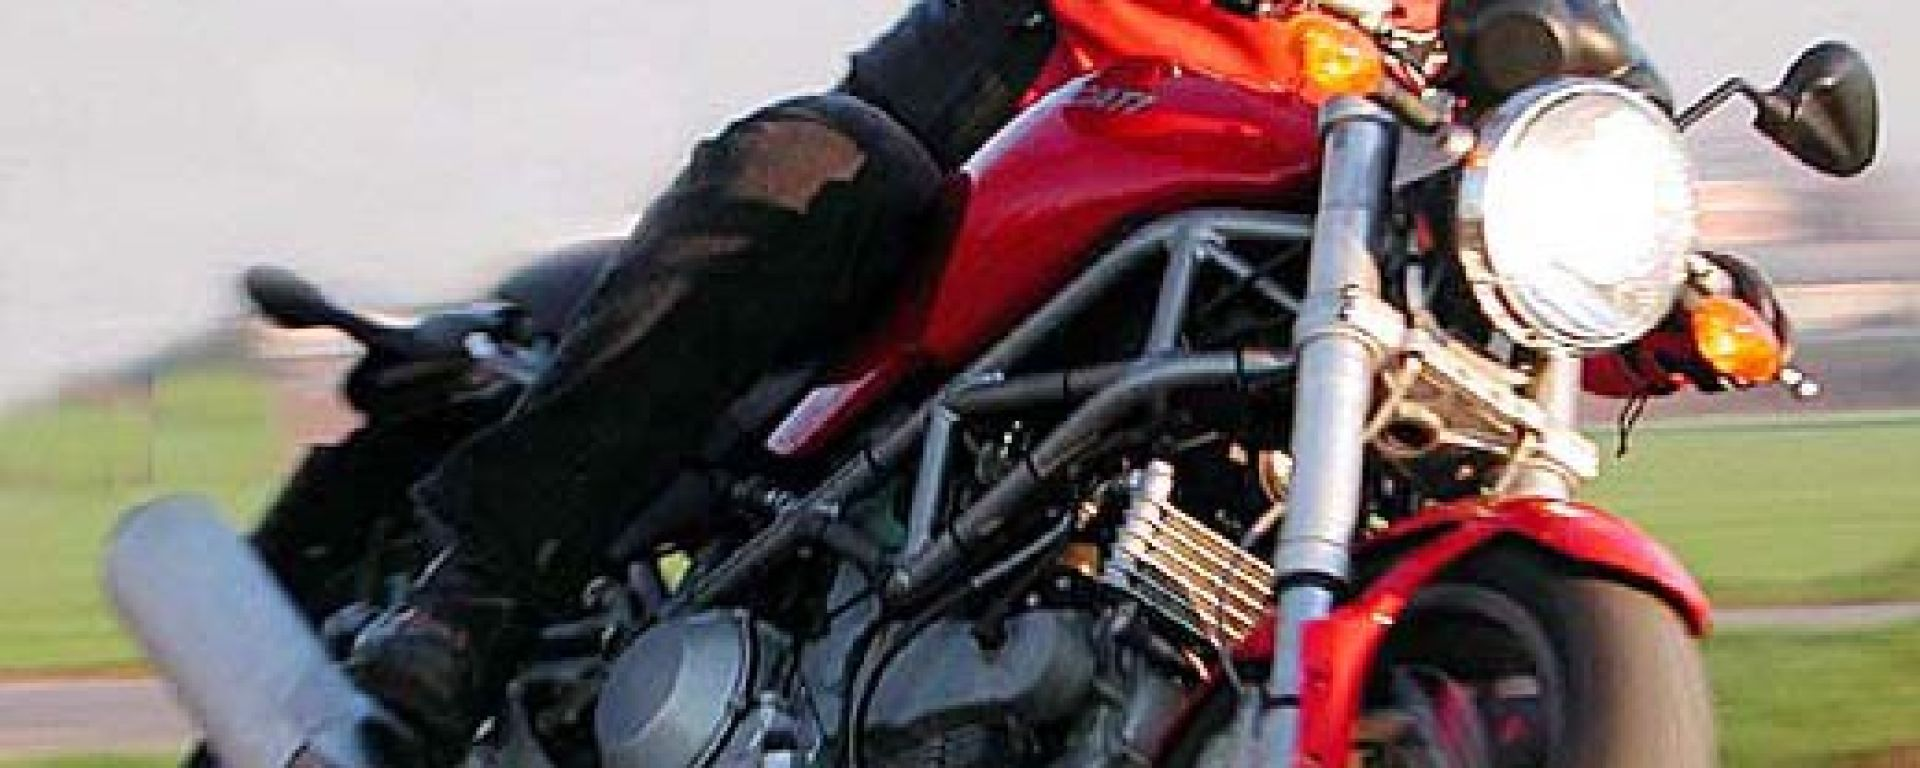 Day by Day Ducati Monster 1000 Ds